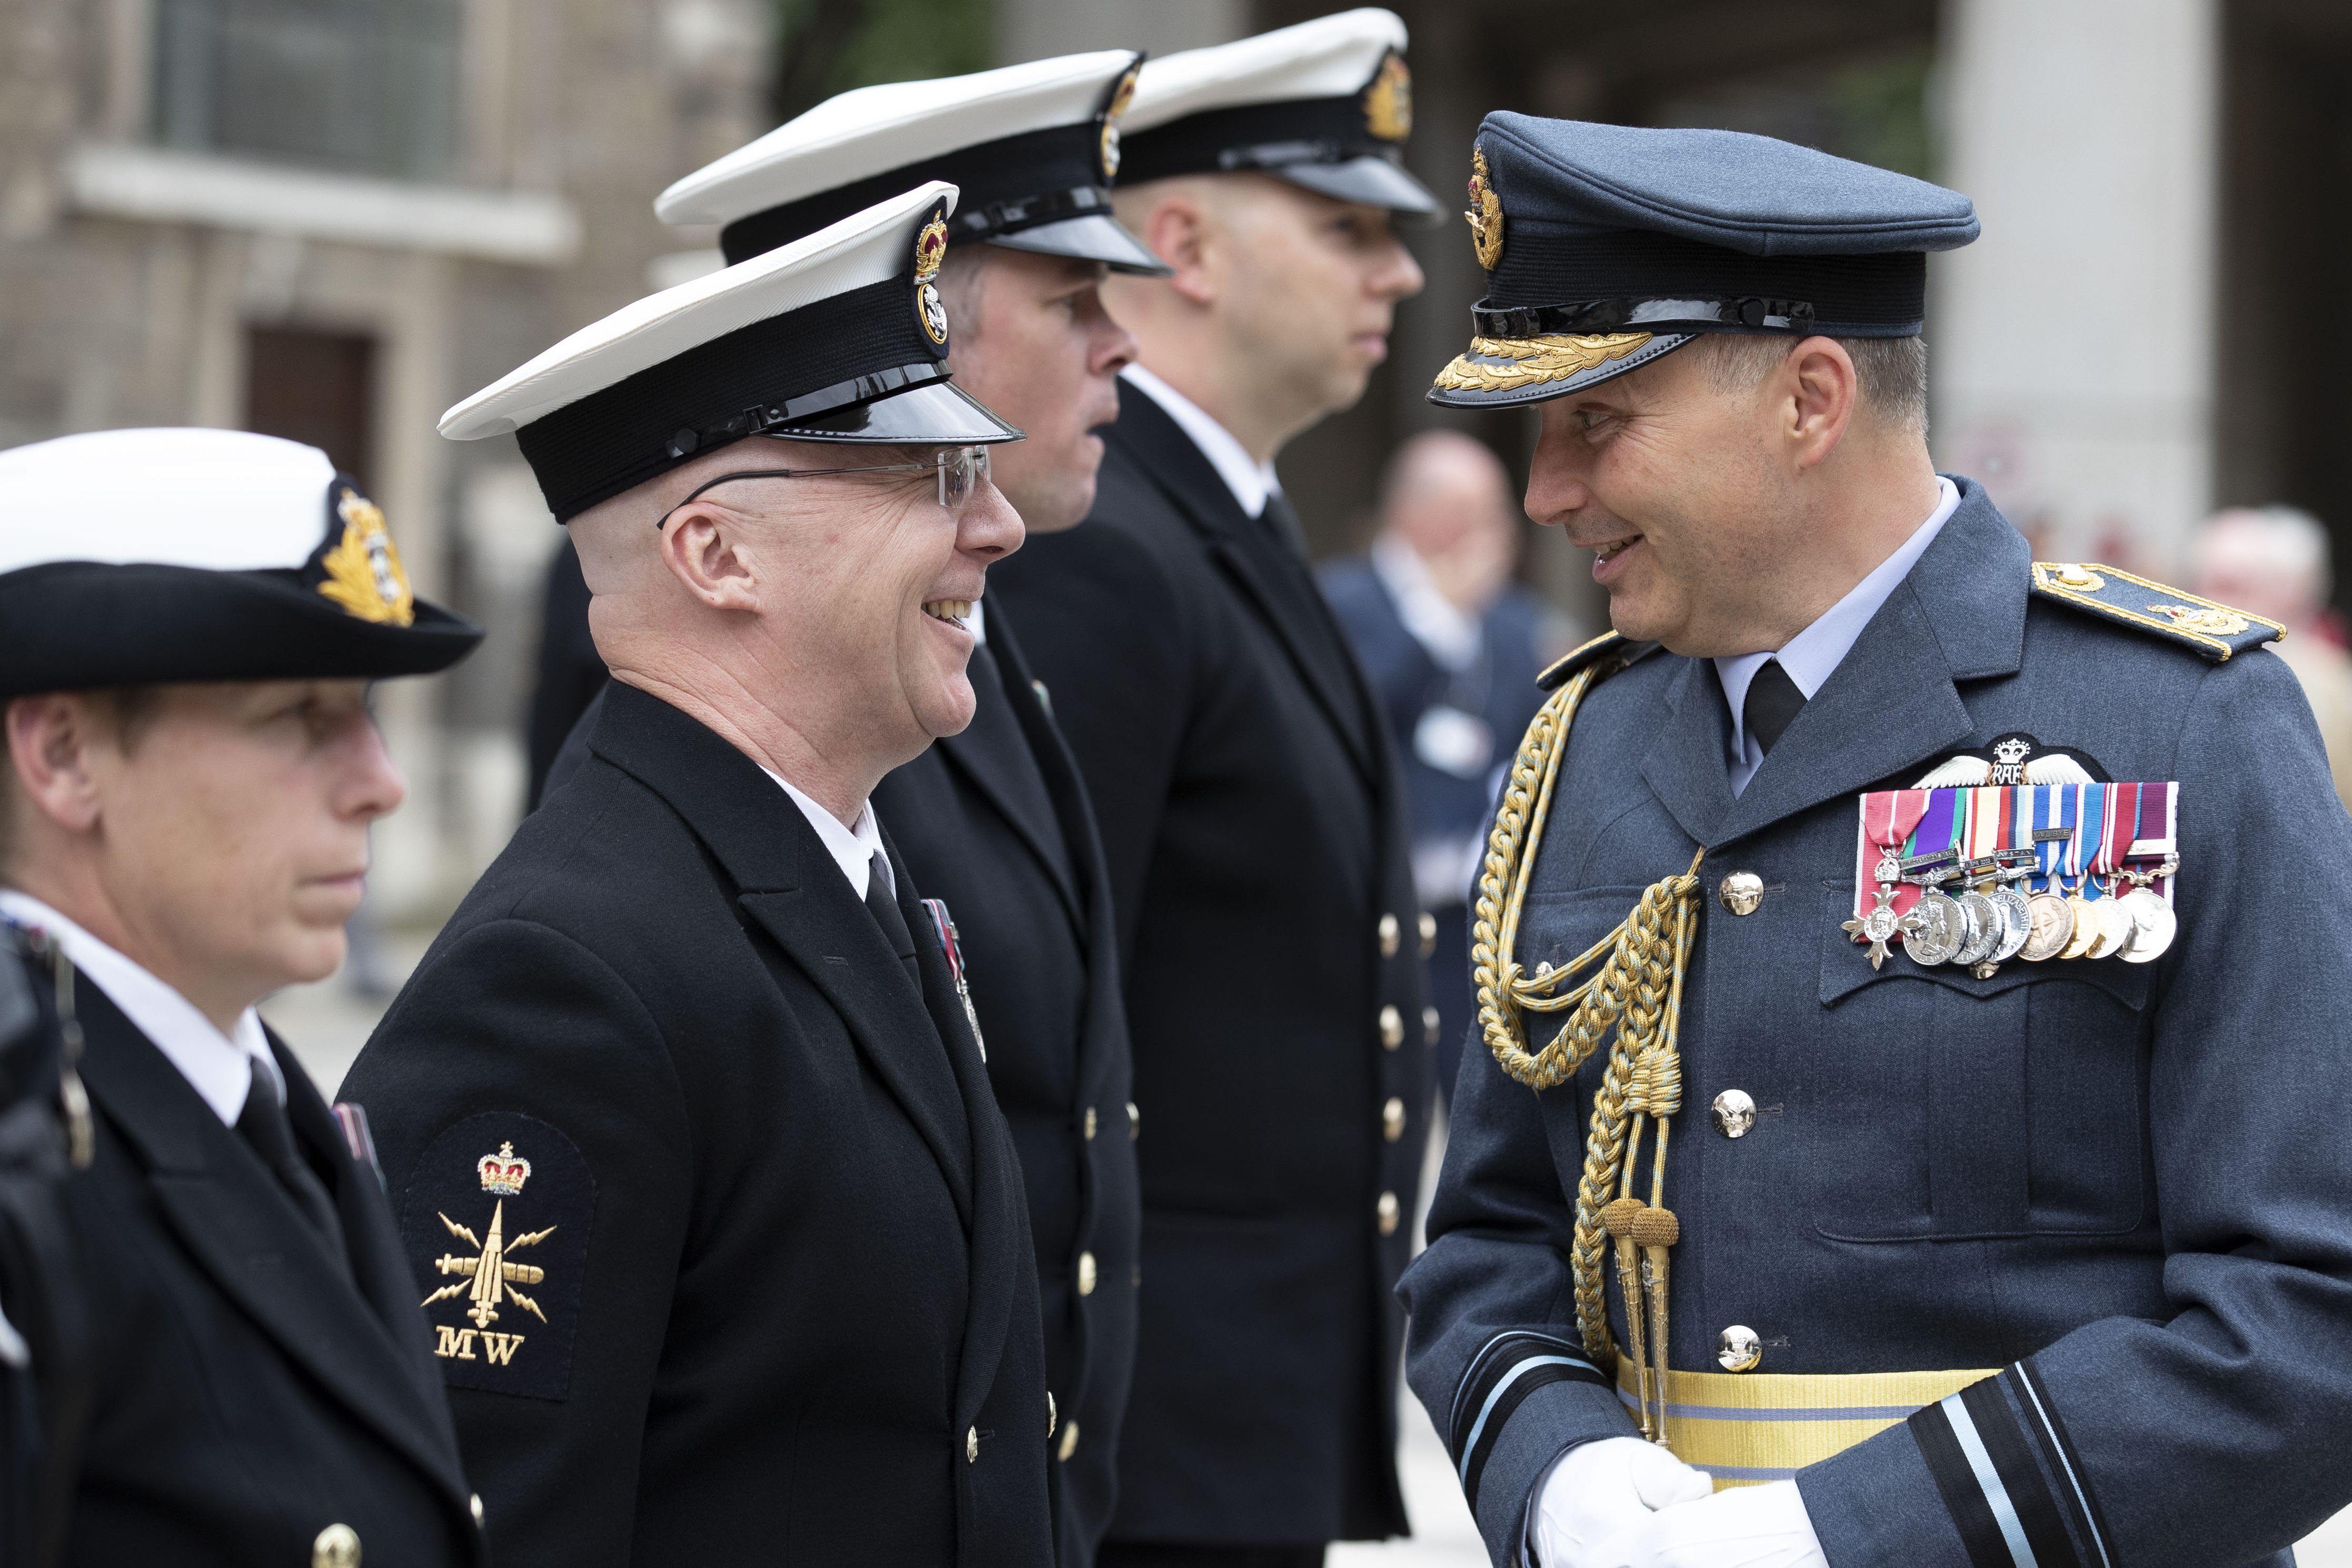 Air Vice-Marshal Ian Gale greets members of the Armed Forces who are lined up in uniform.